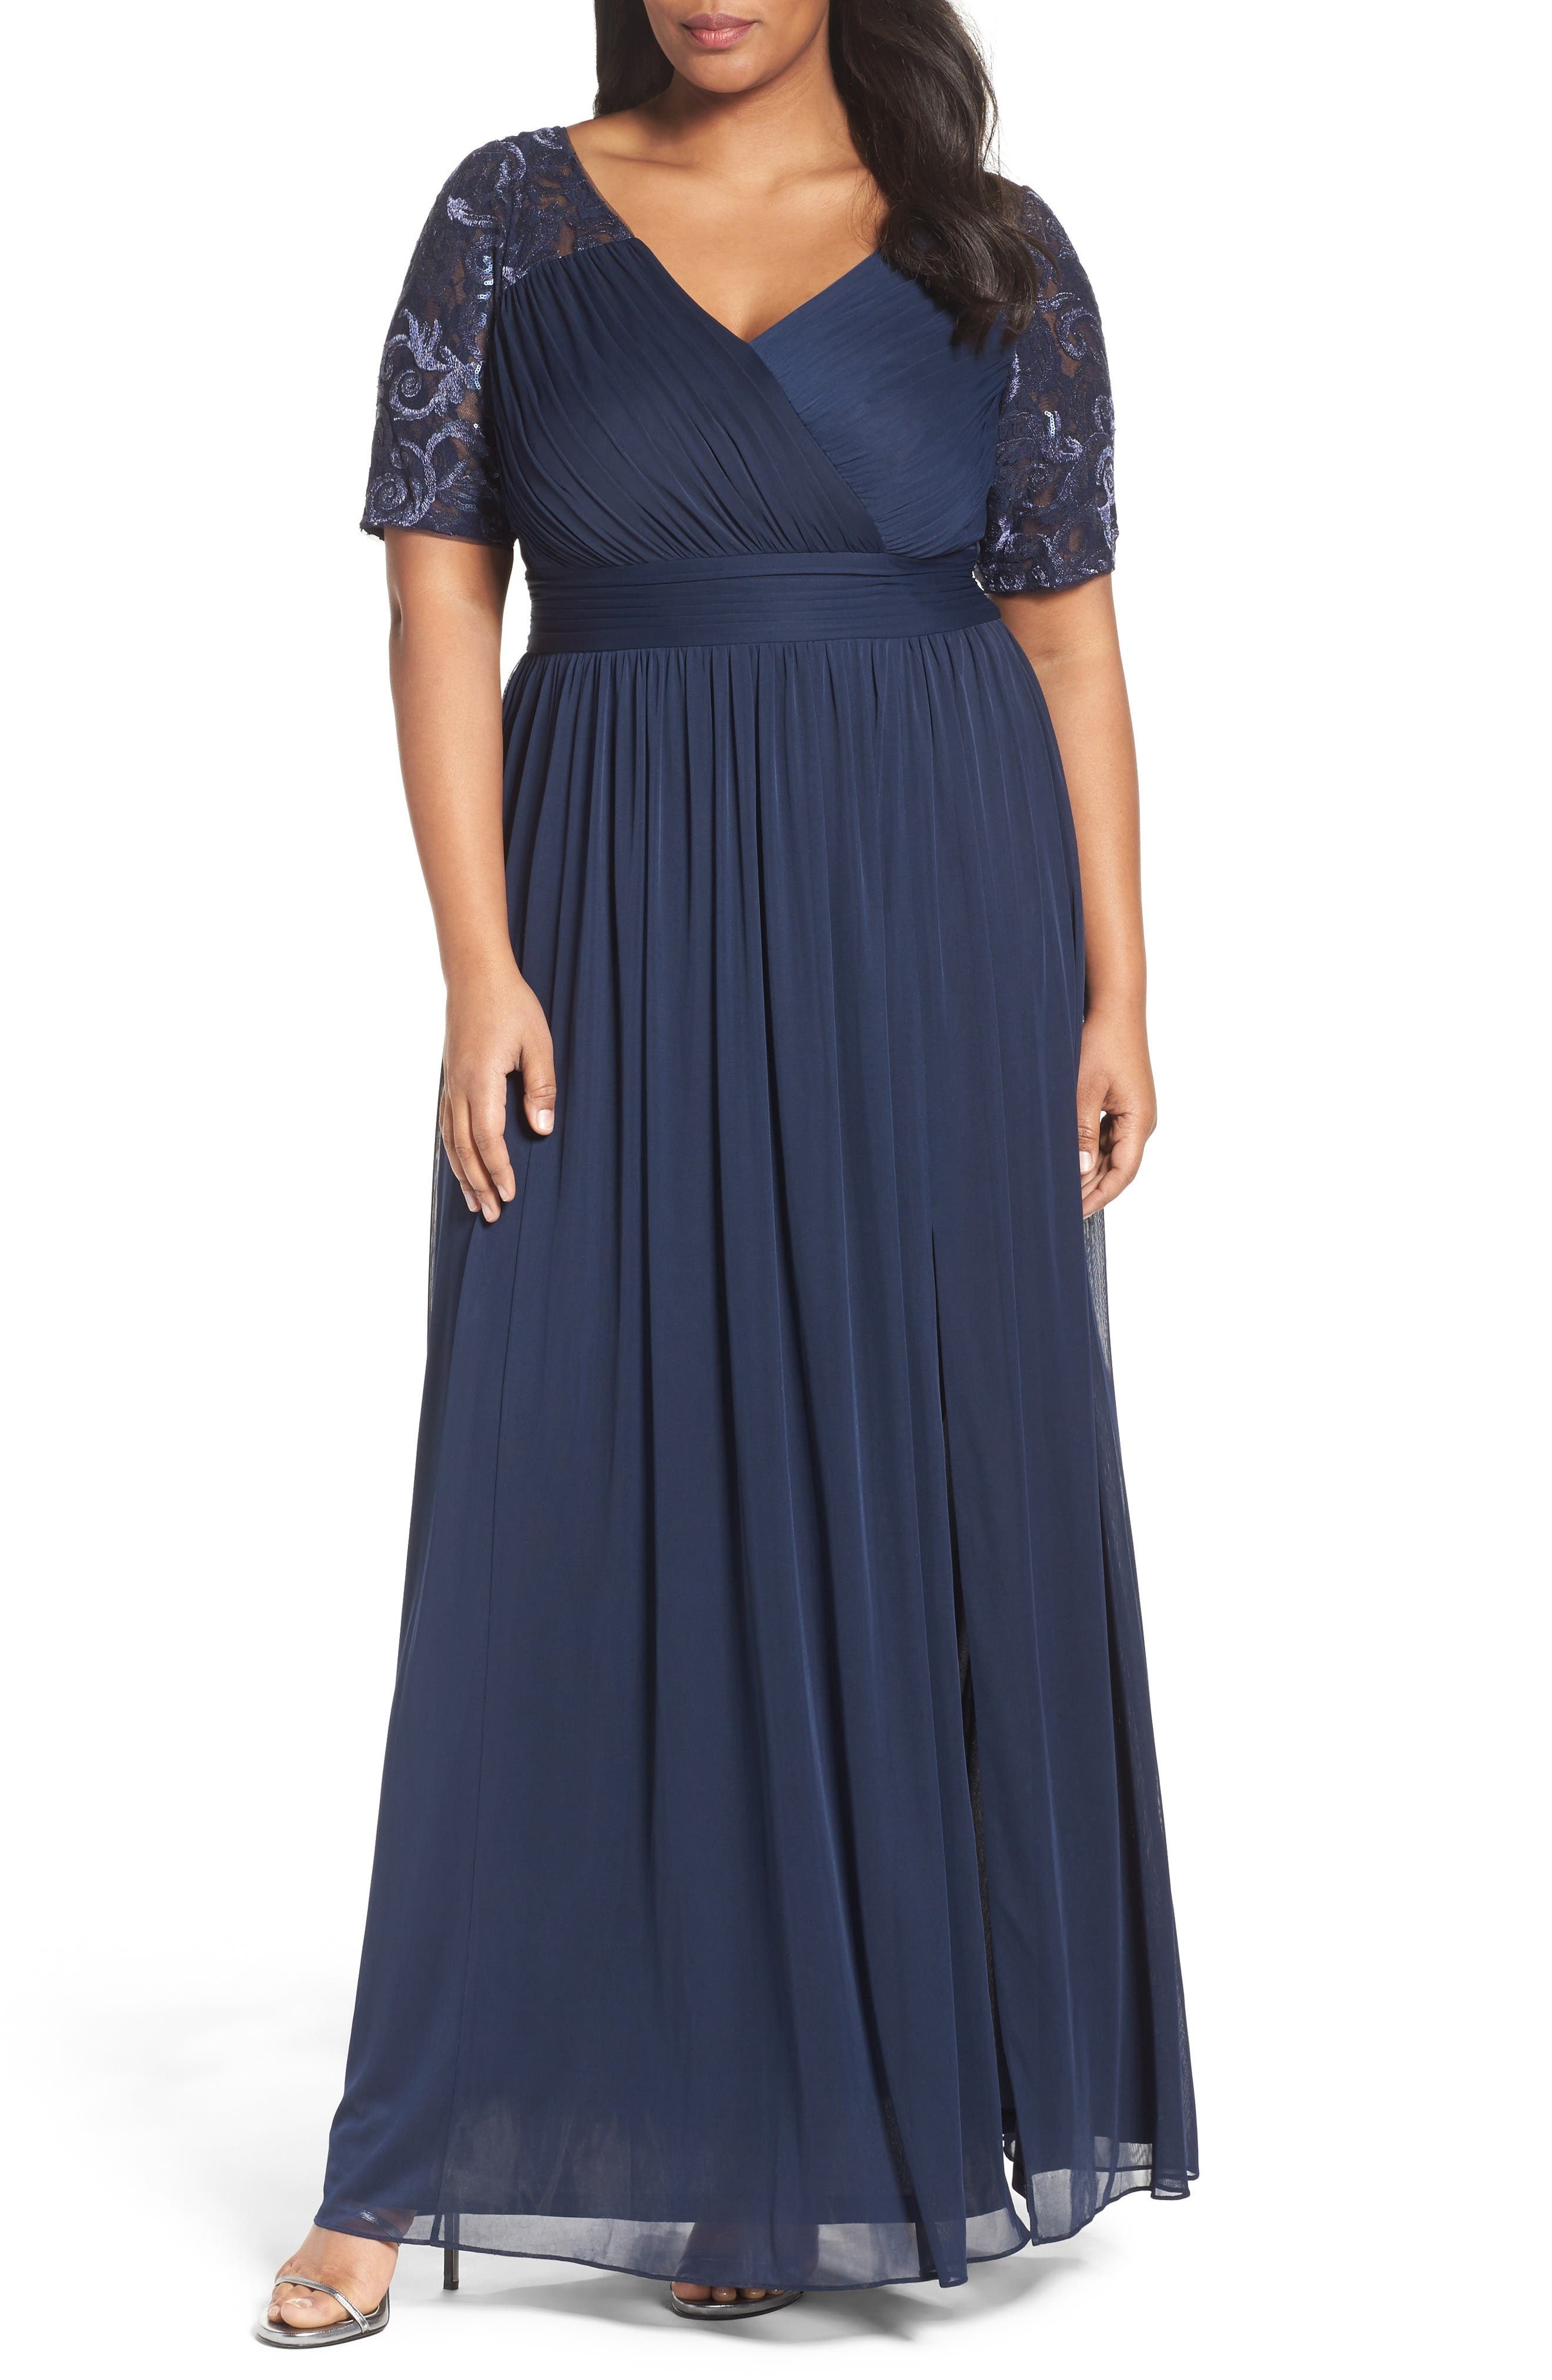 Plus Size Ball Gowns Dress